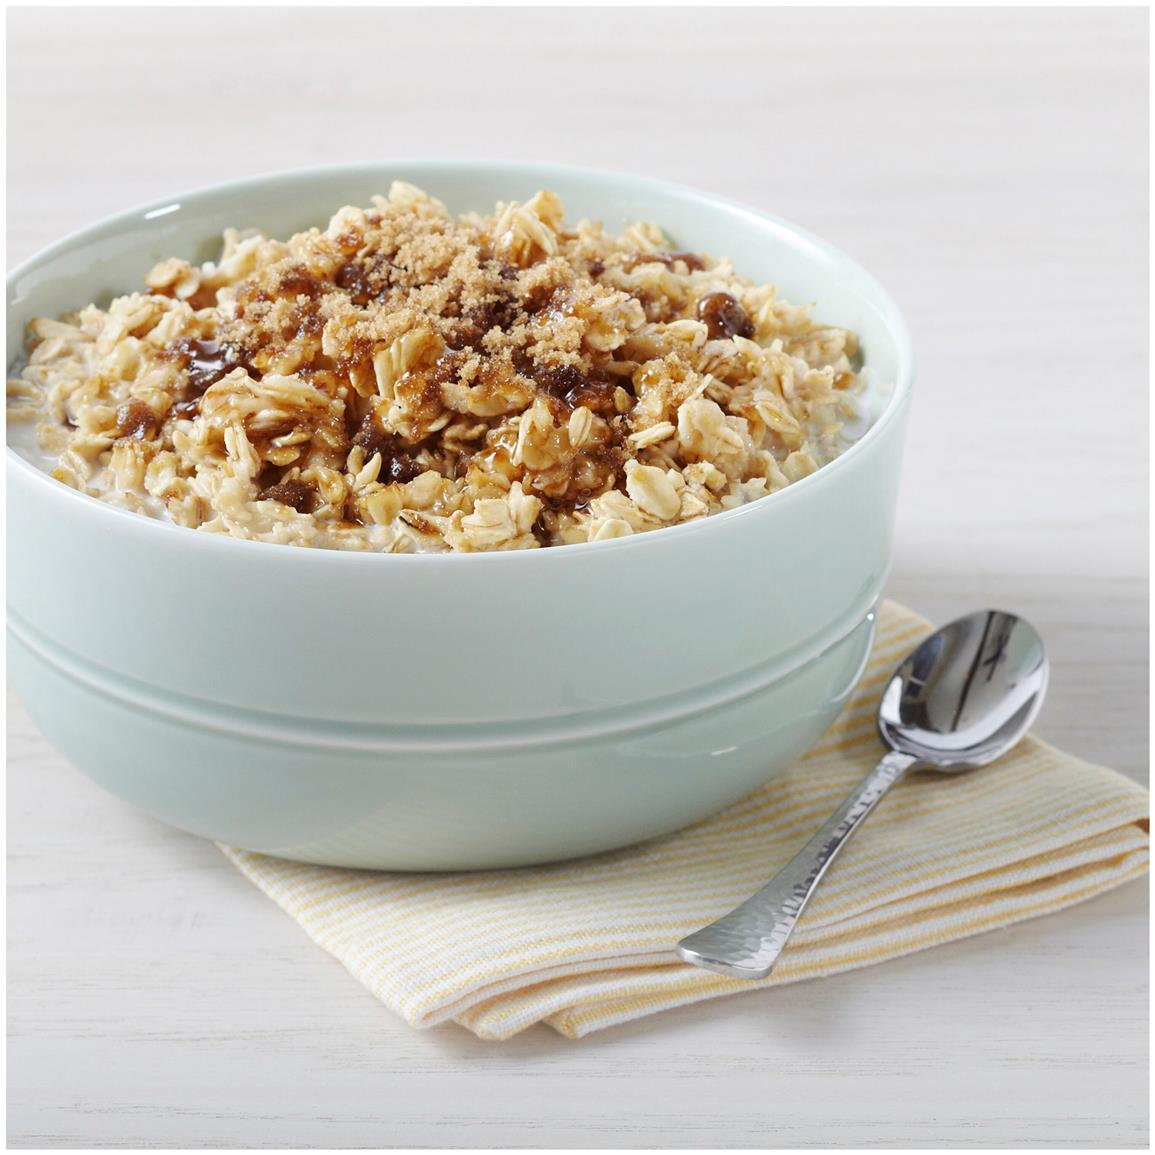 1 pouch Maple Brown Sugar Oatmeal (10 servings)